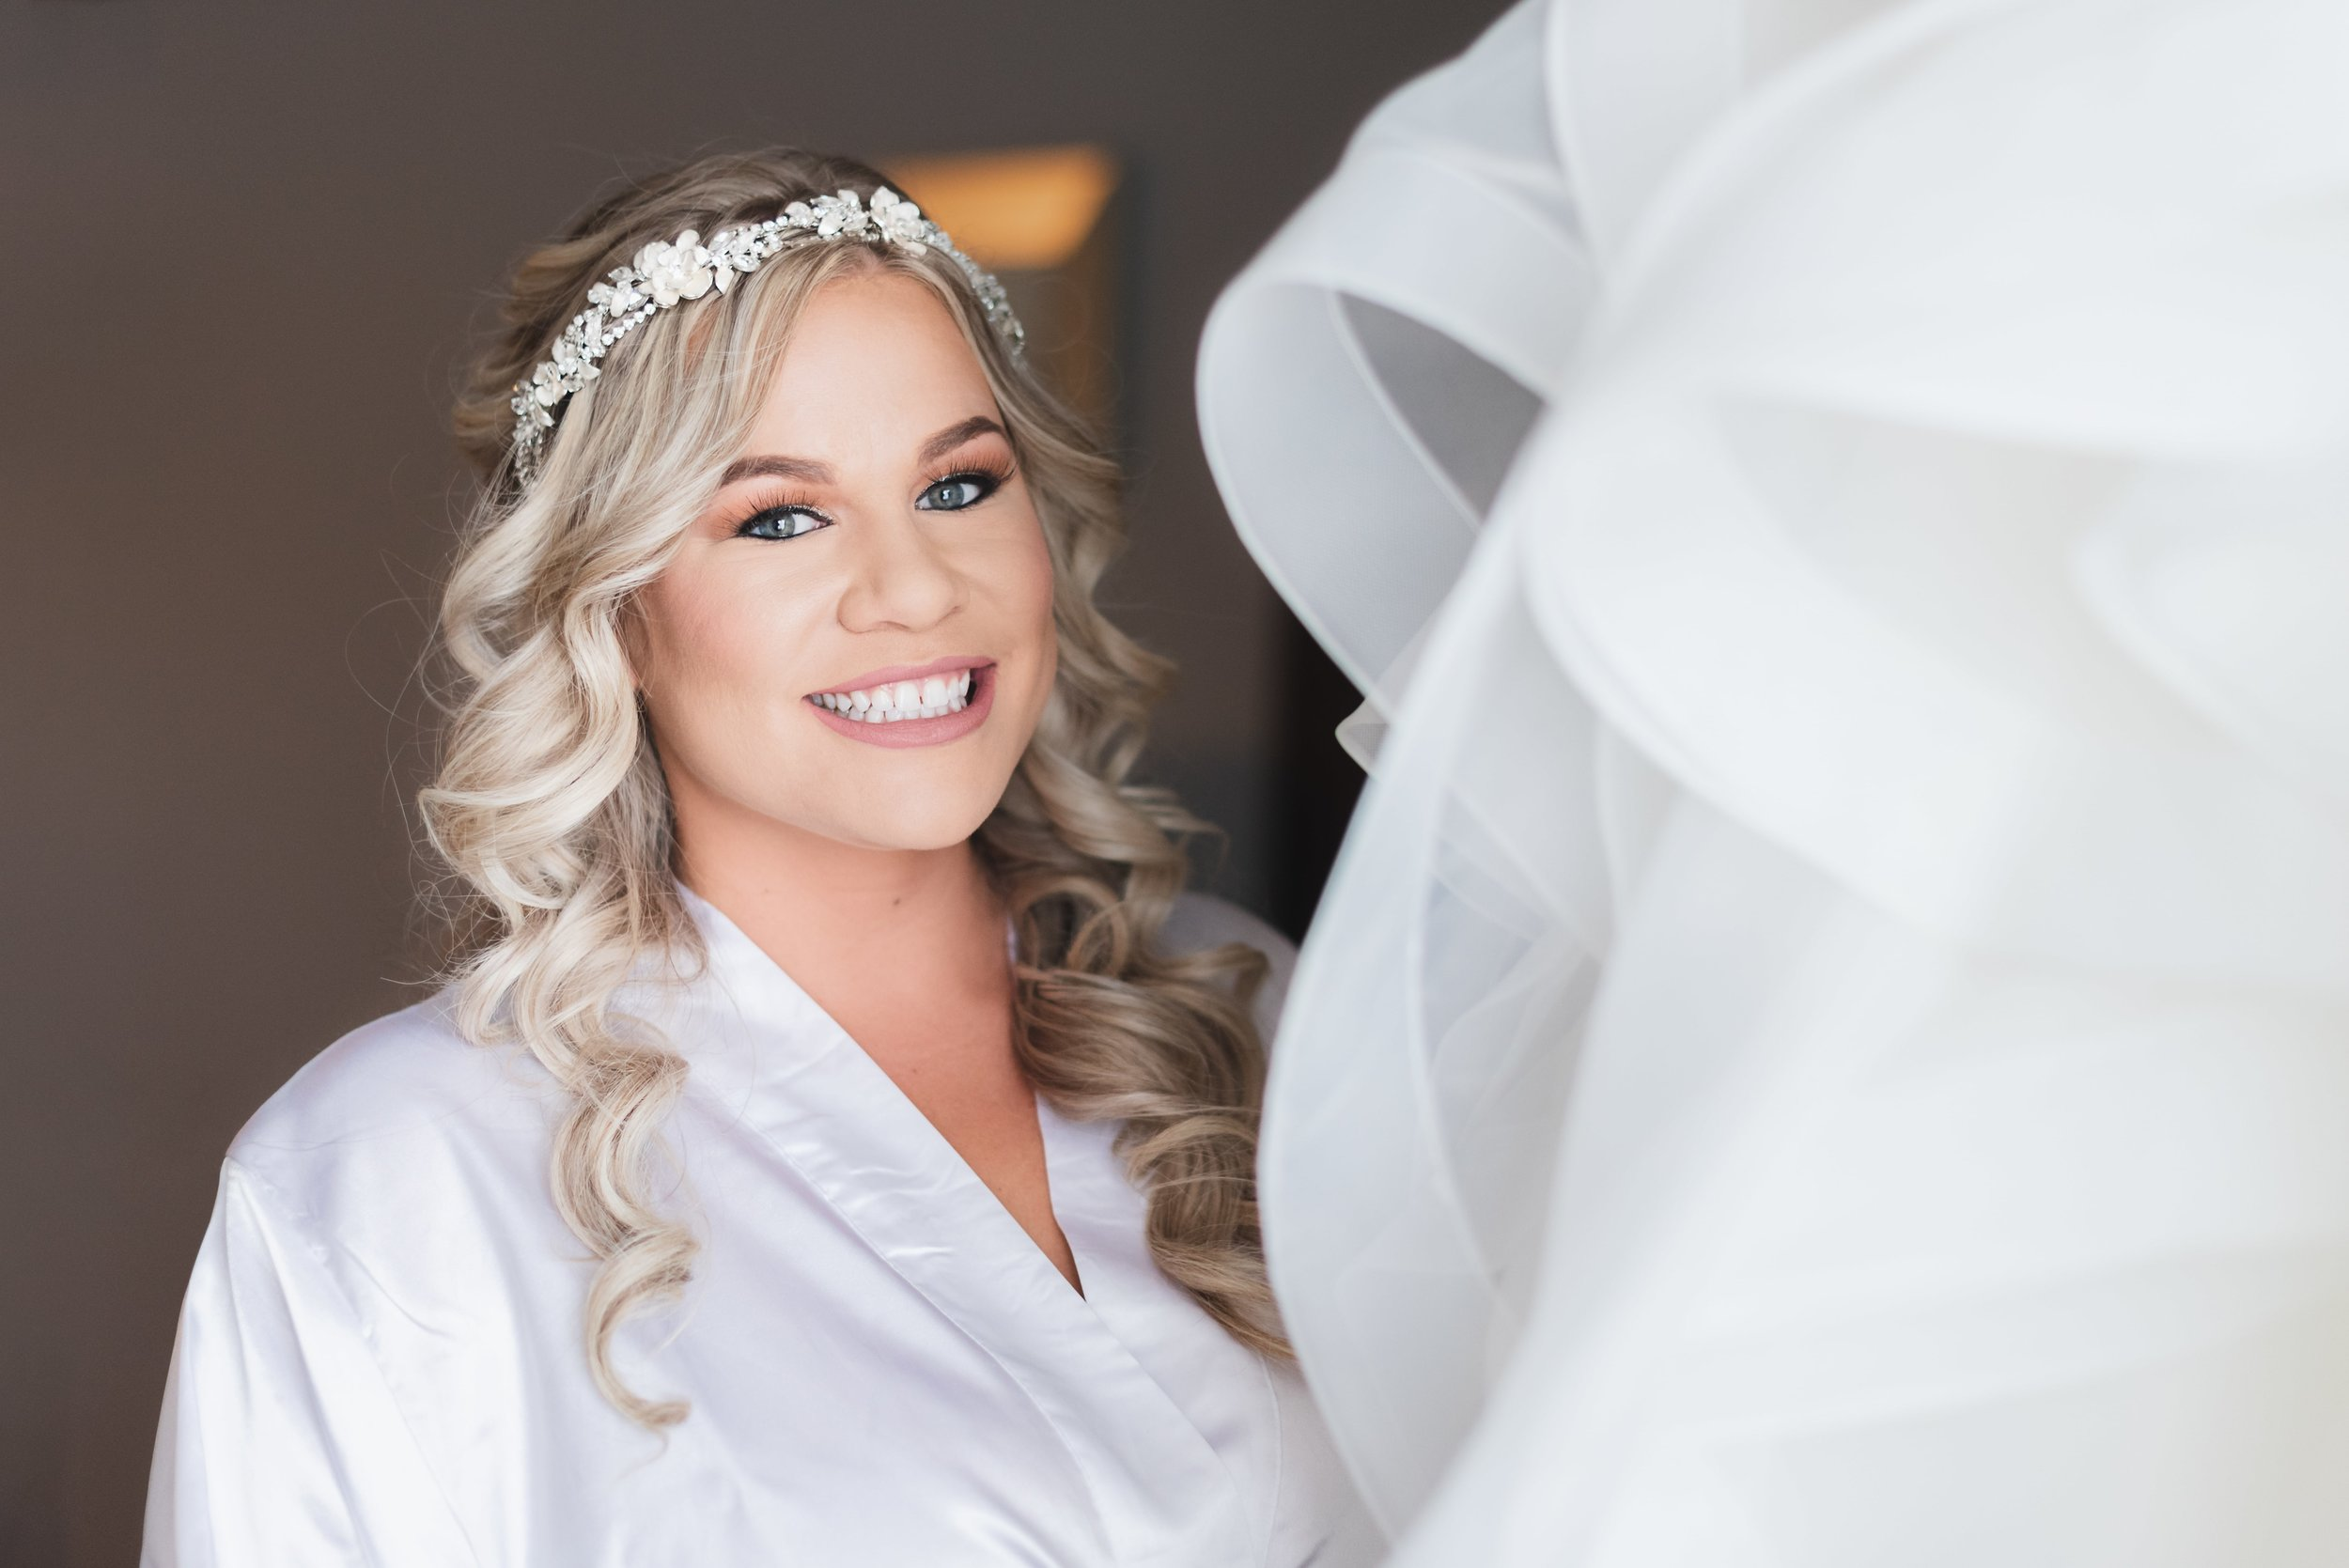 Bride smiling on the morning of her wedding day.